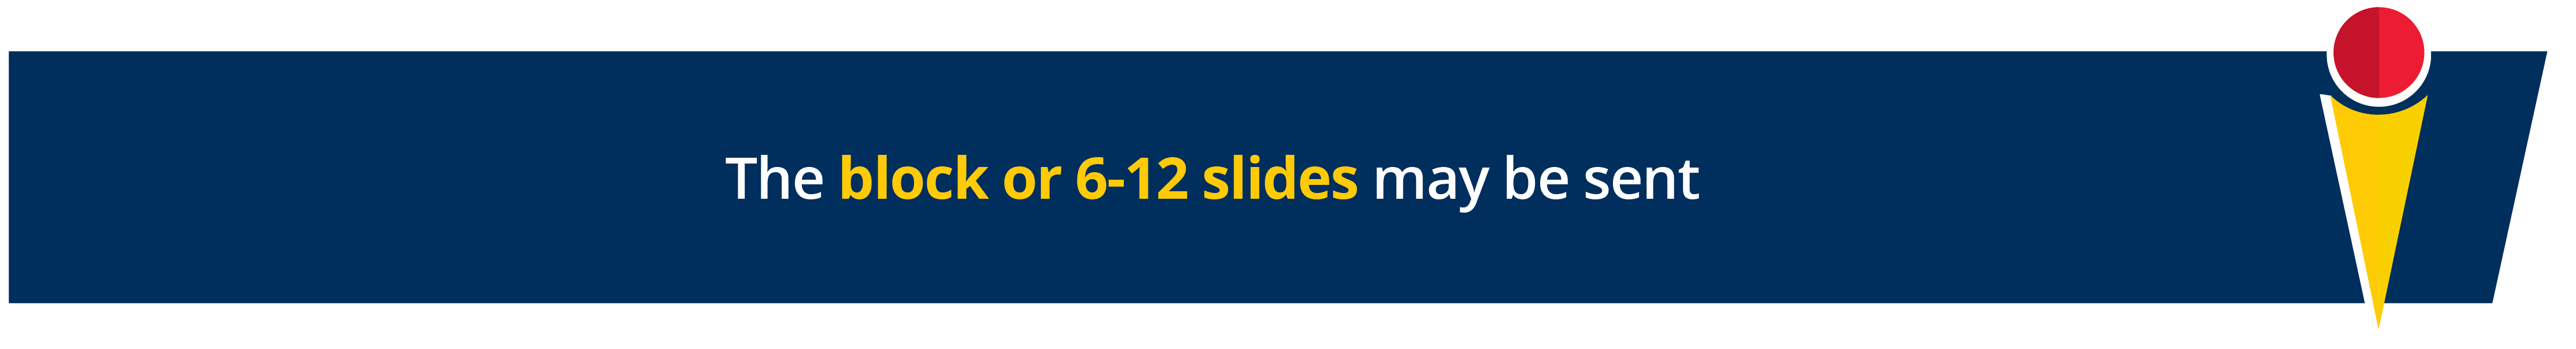 The block of 6-12 slides may be sent